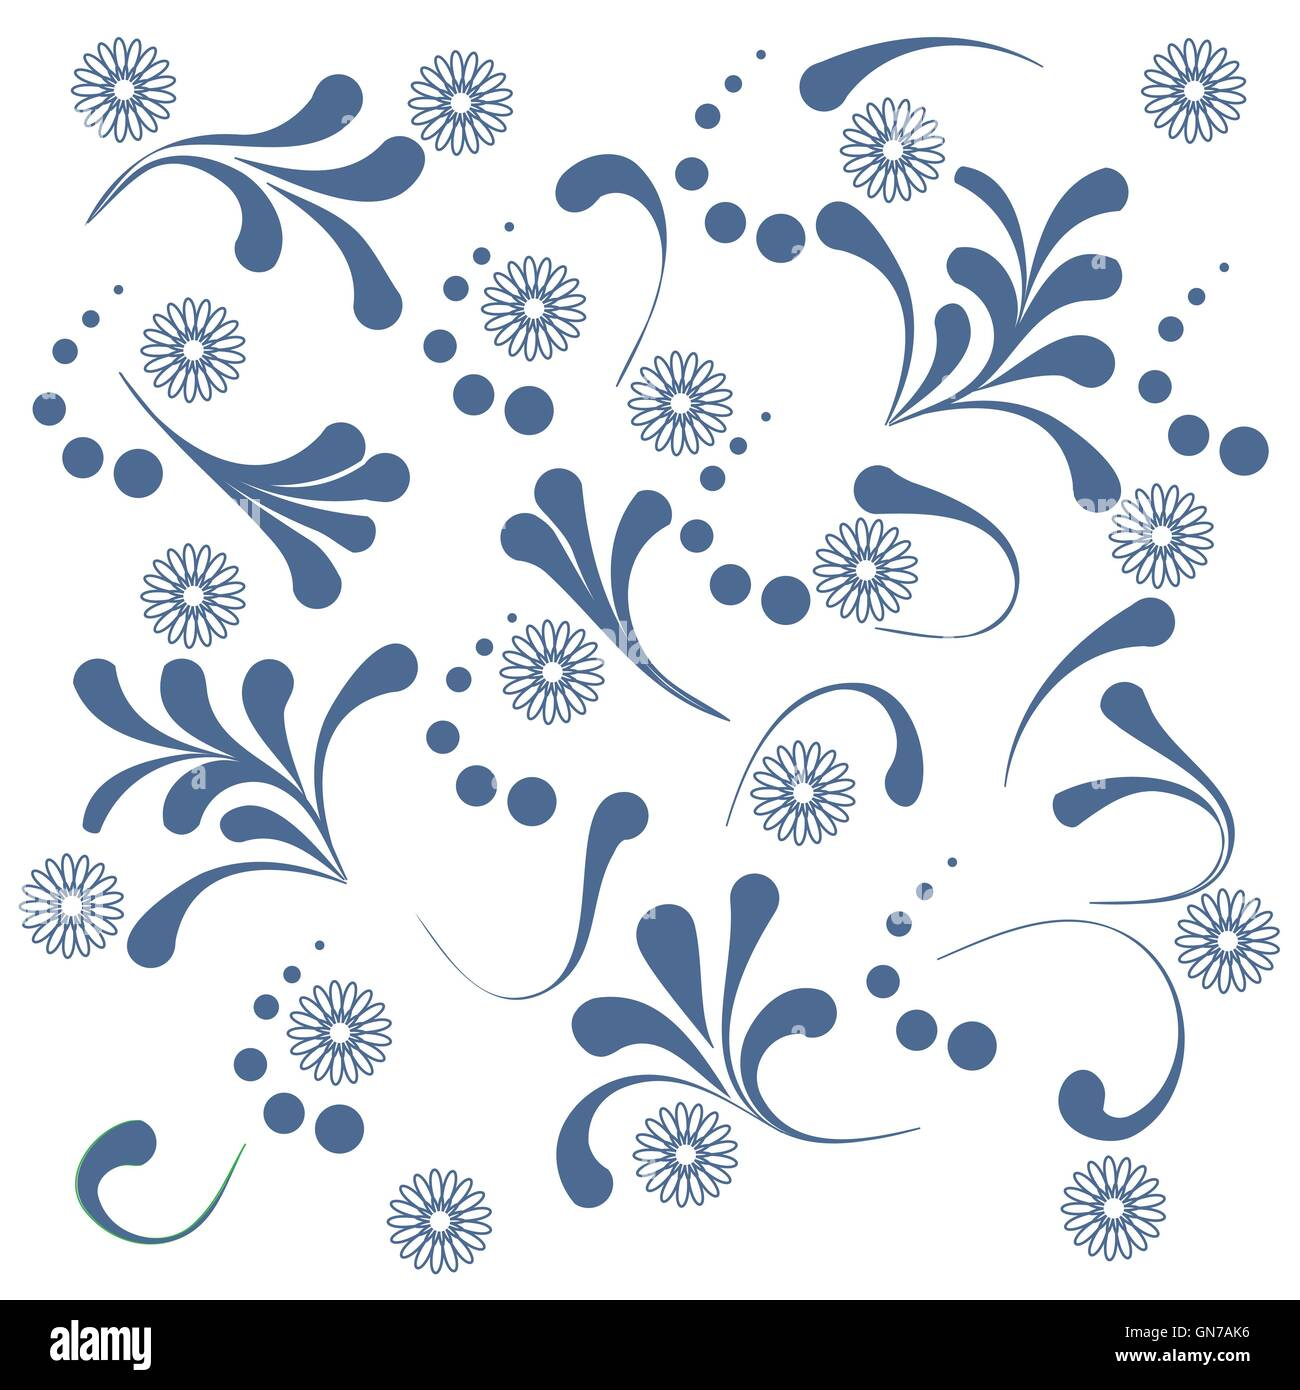 Cute pattern with various naive plants and contours of flowers on a white background - Stock Vector